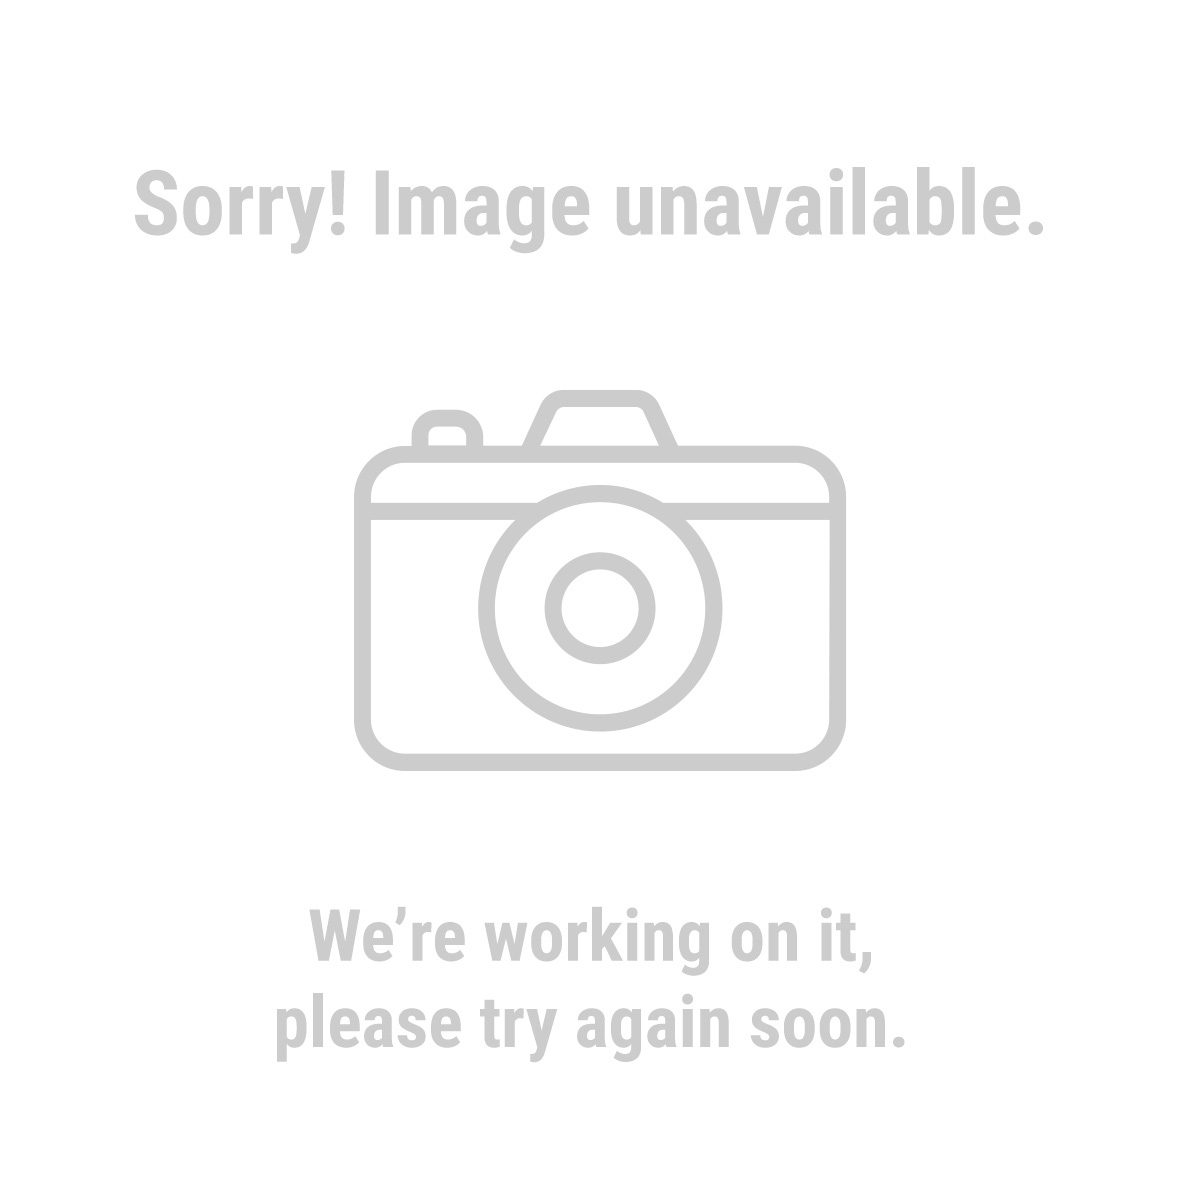 Haul-Master 67151 Dirt Bike Stand